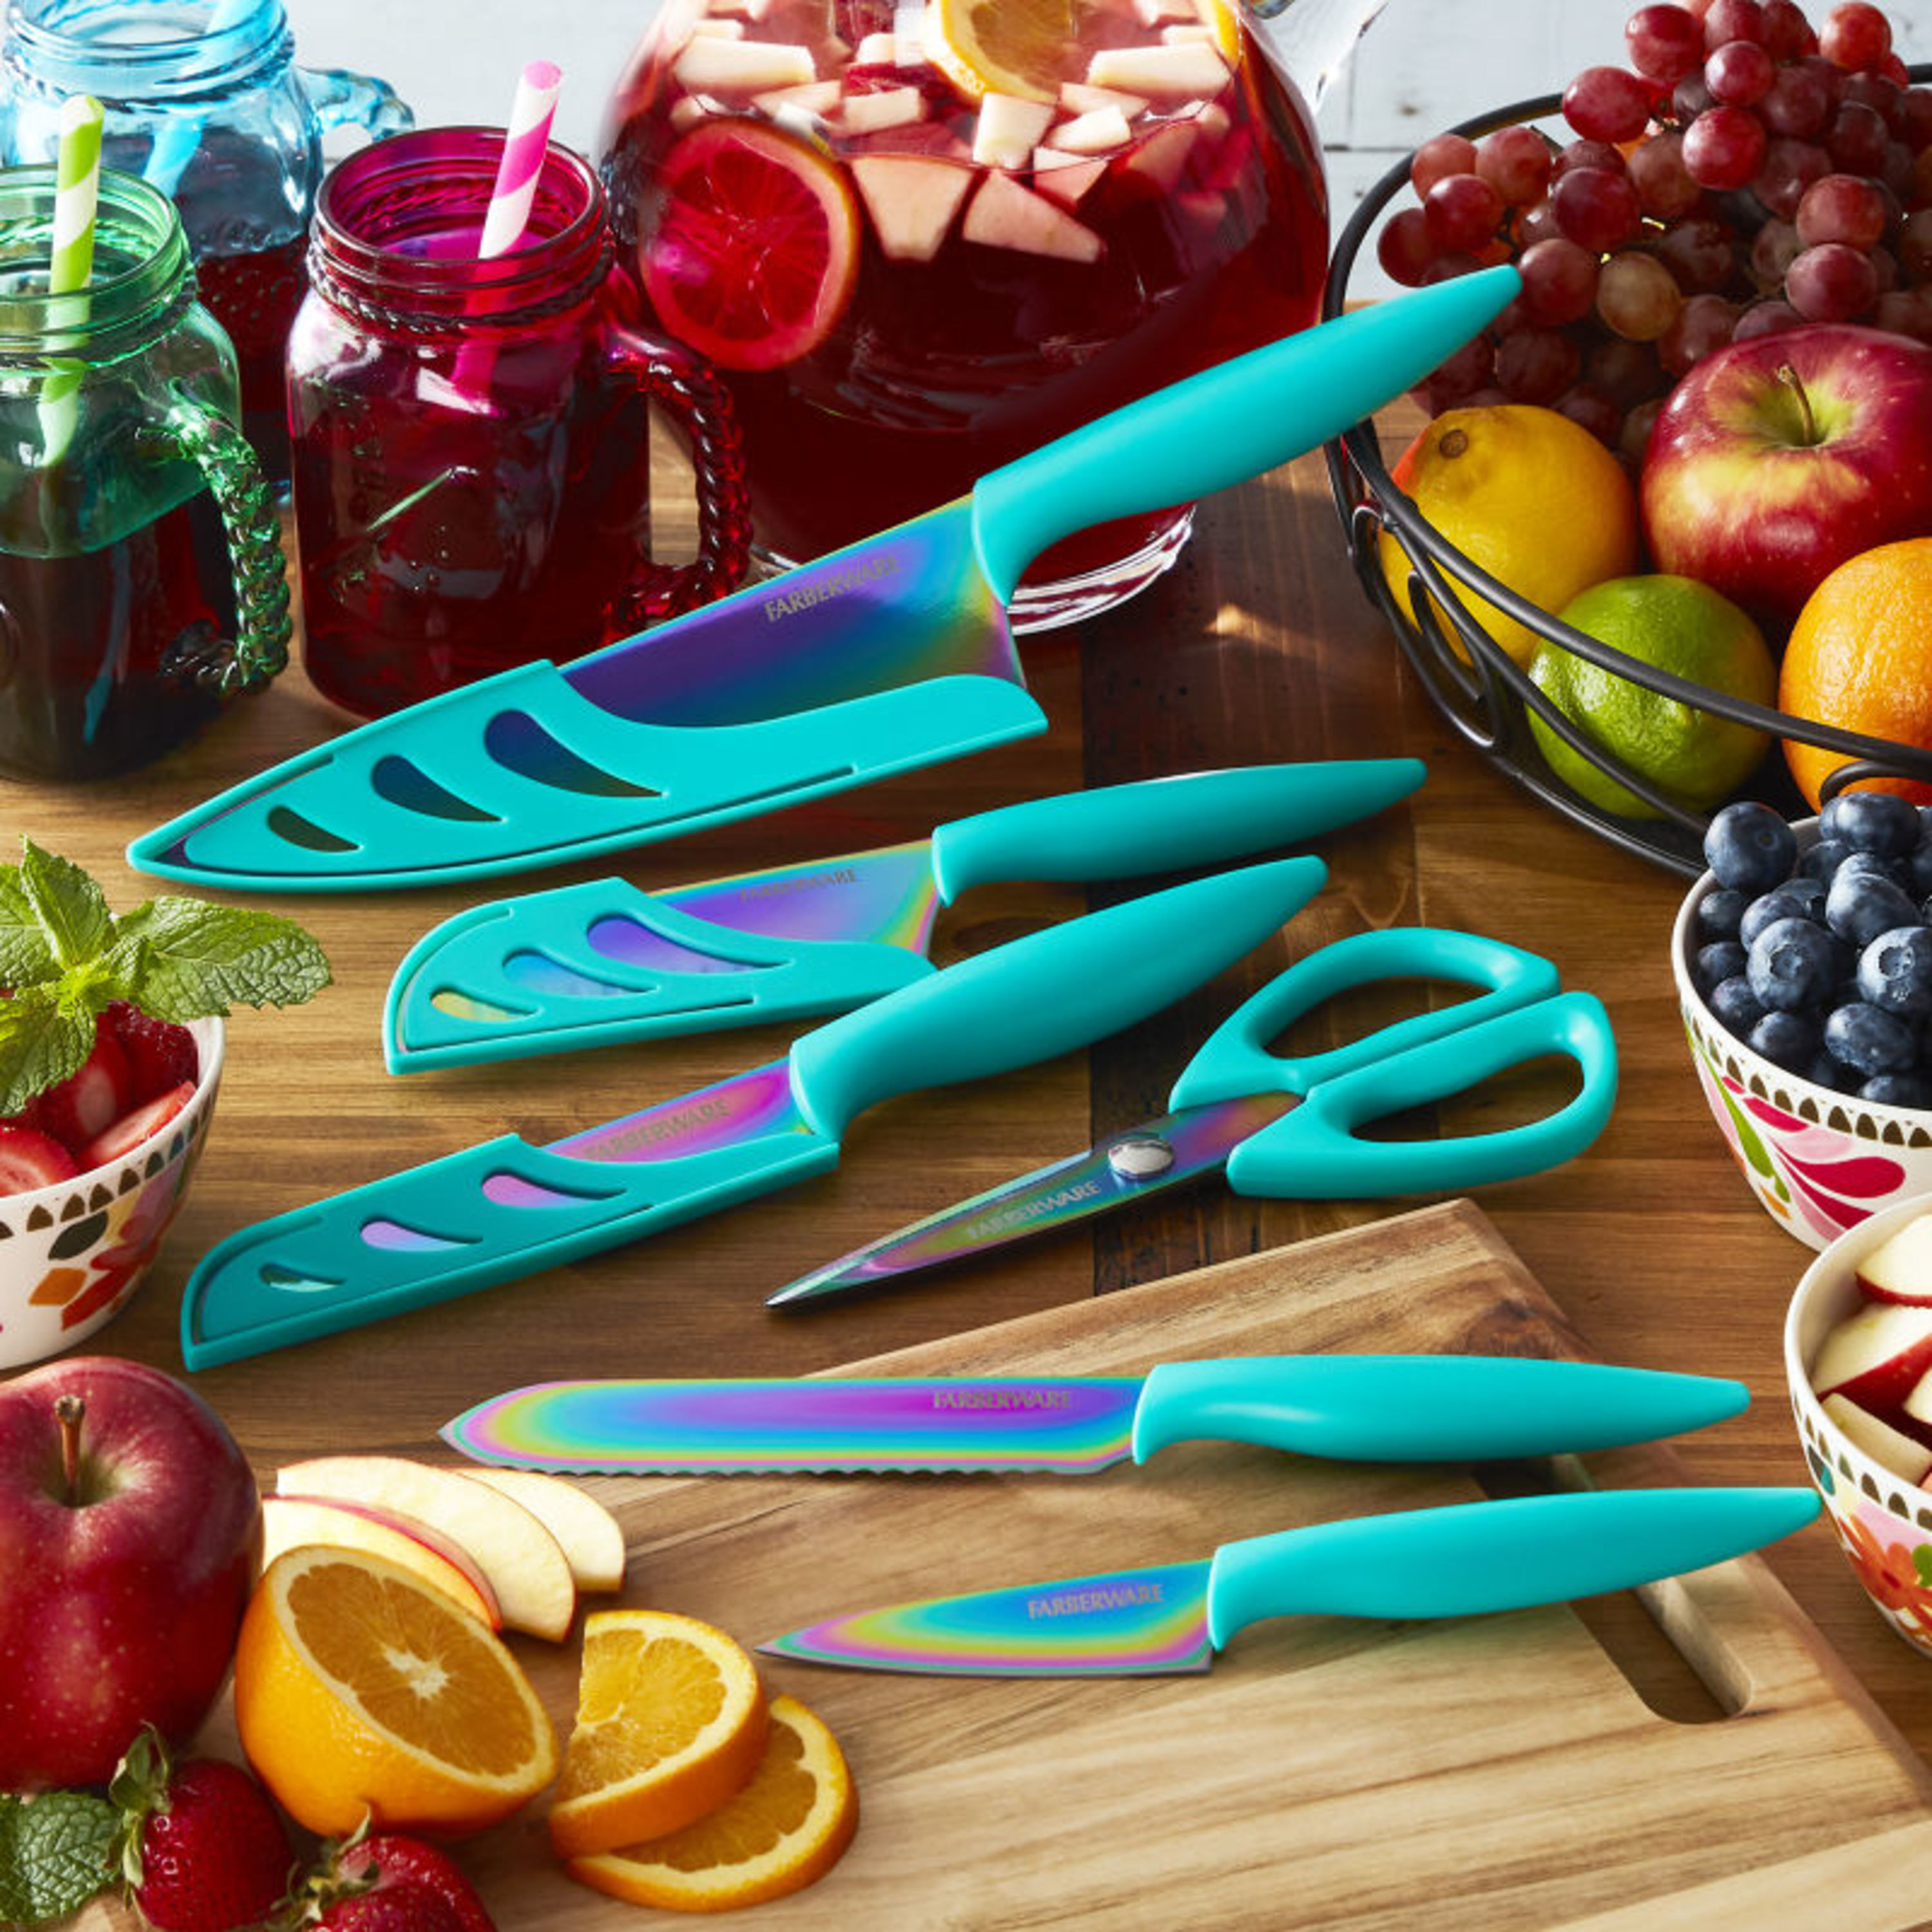 teal knife and scissors set with holographic blades